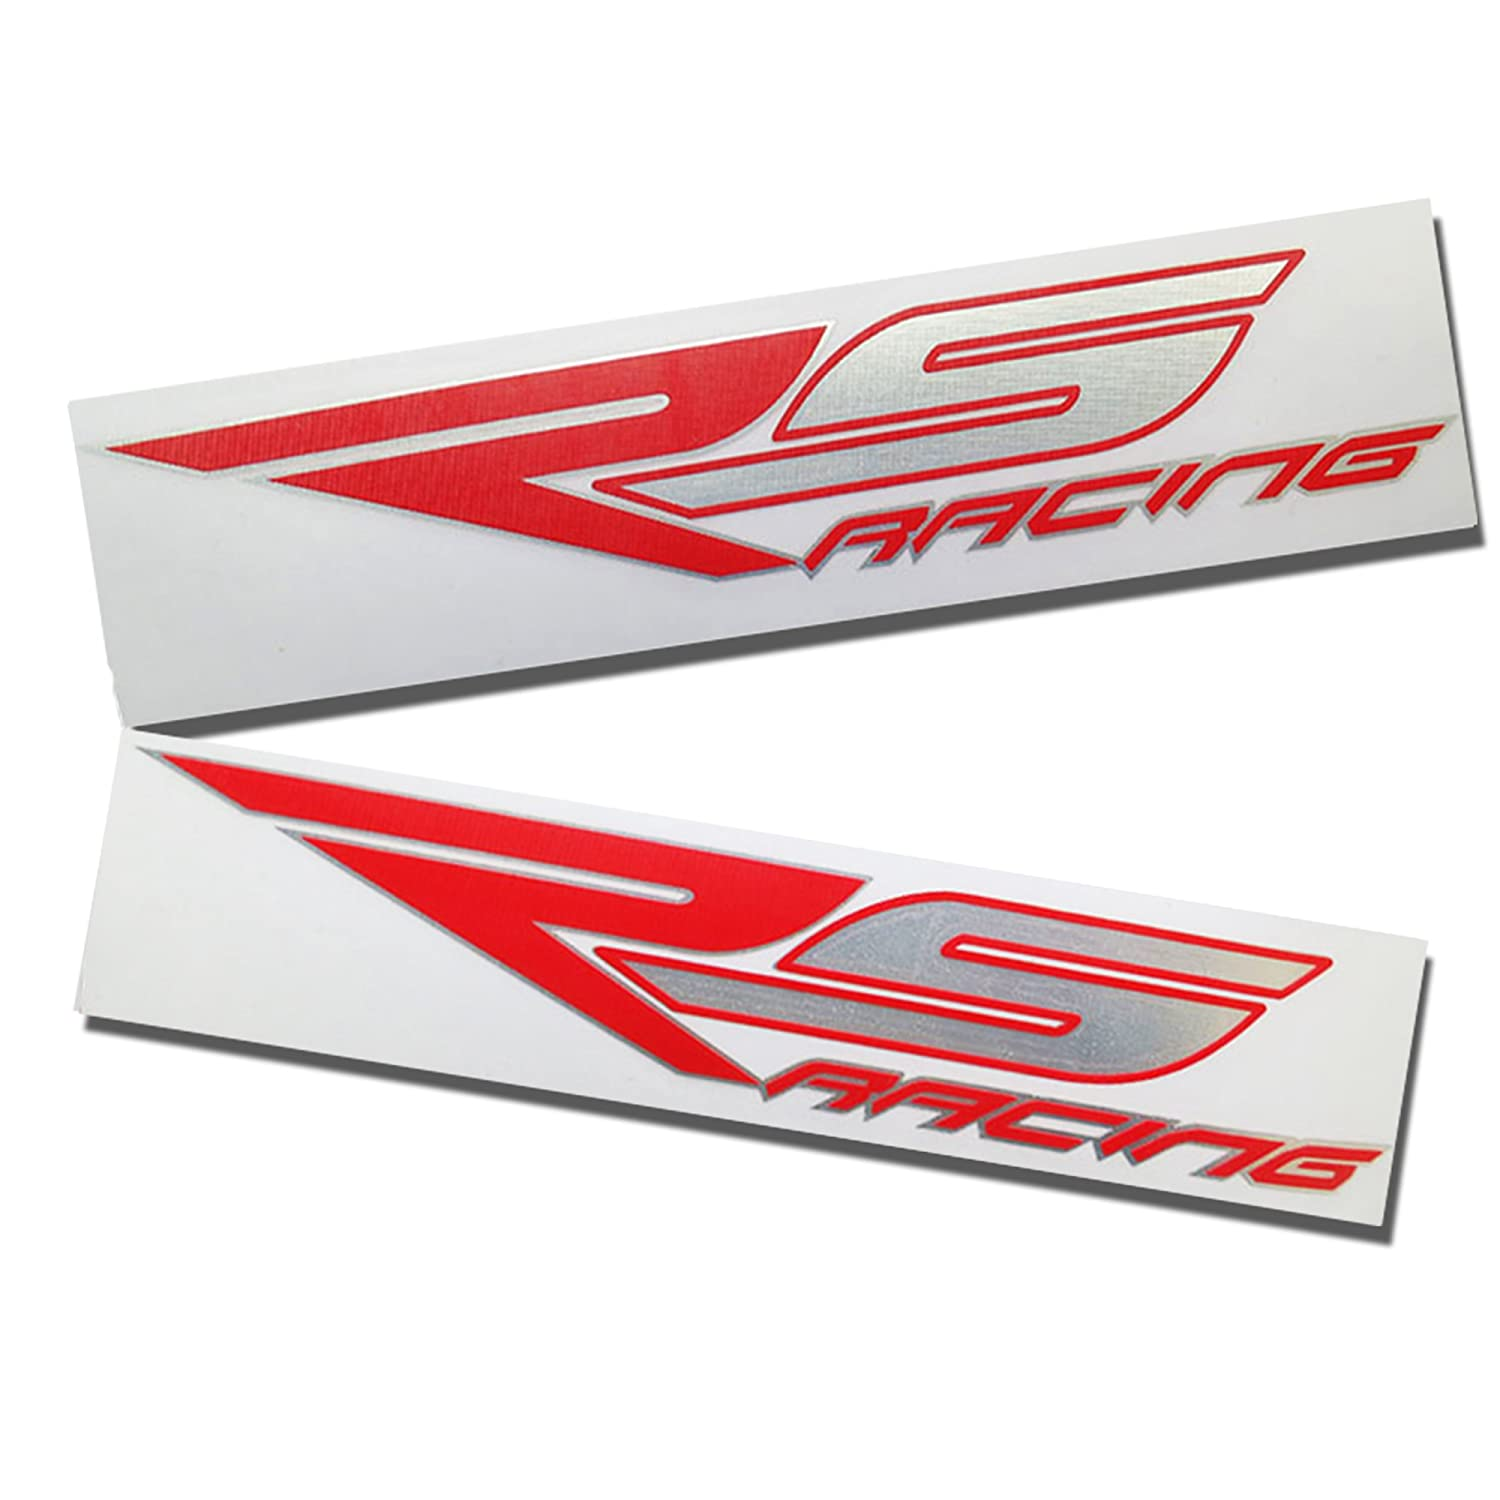 Aprilia rs racing red and silver chrome design graphics decals stickers x 2 amazon co uk car motorbike